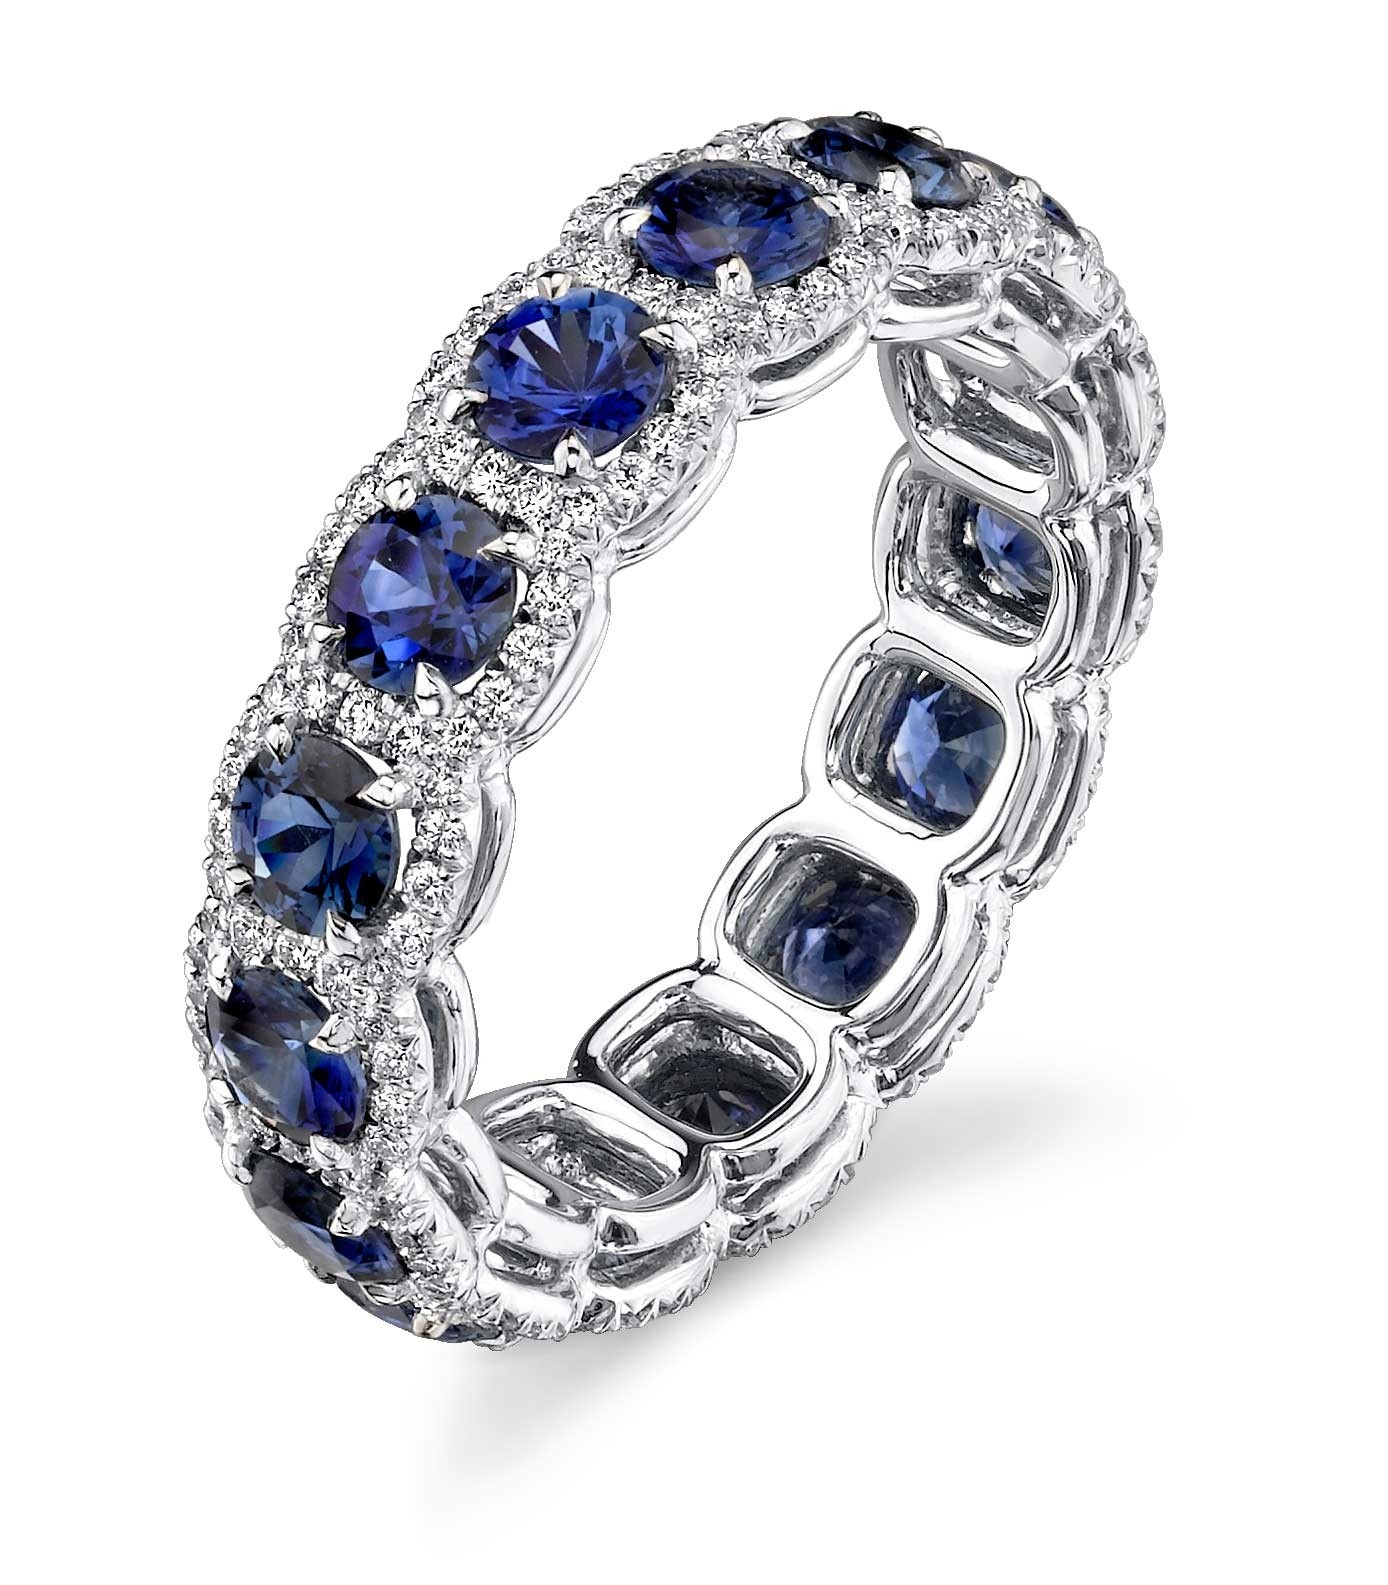 egvqfizozn product image blue moss of ic ben diamond qitok jewellers gold pagespeed sapphire ring white